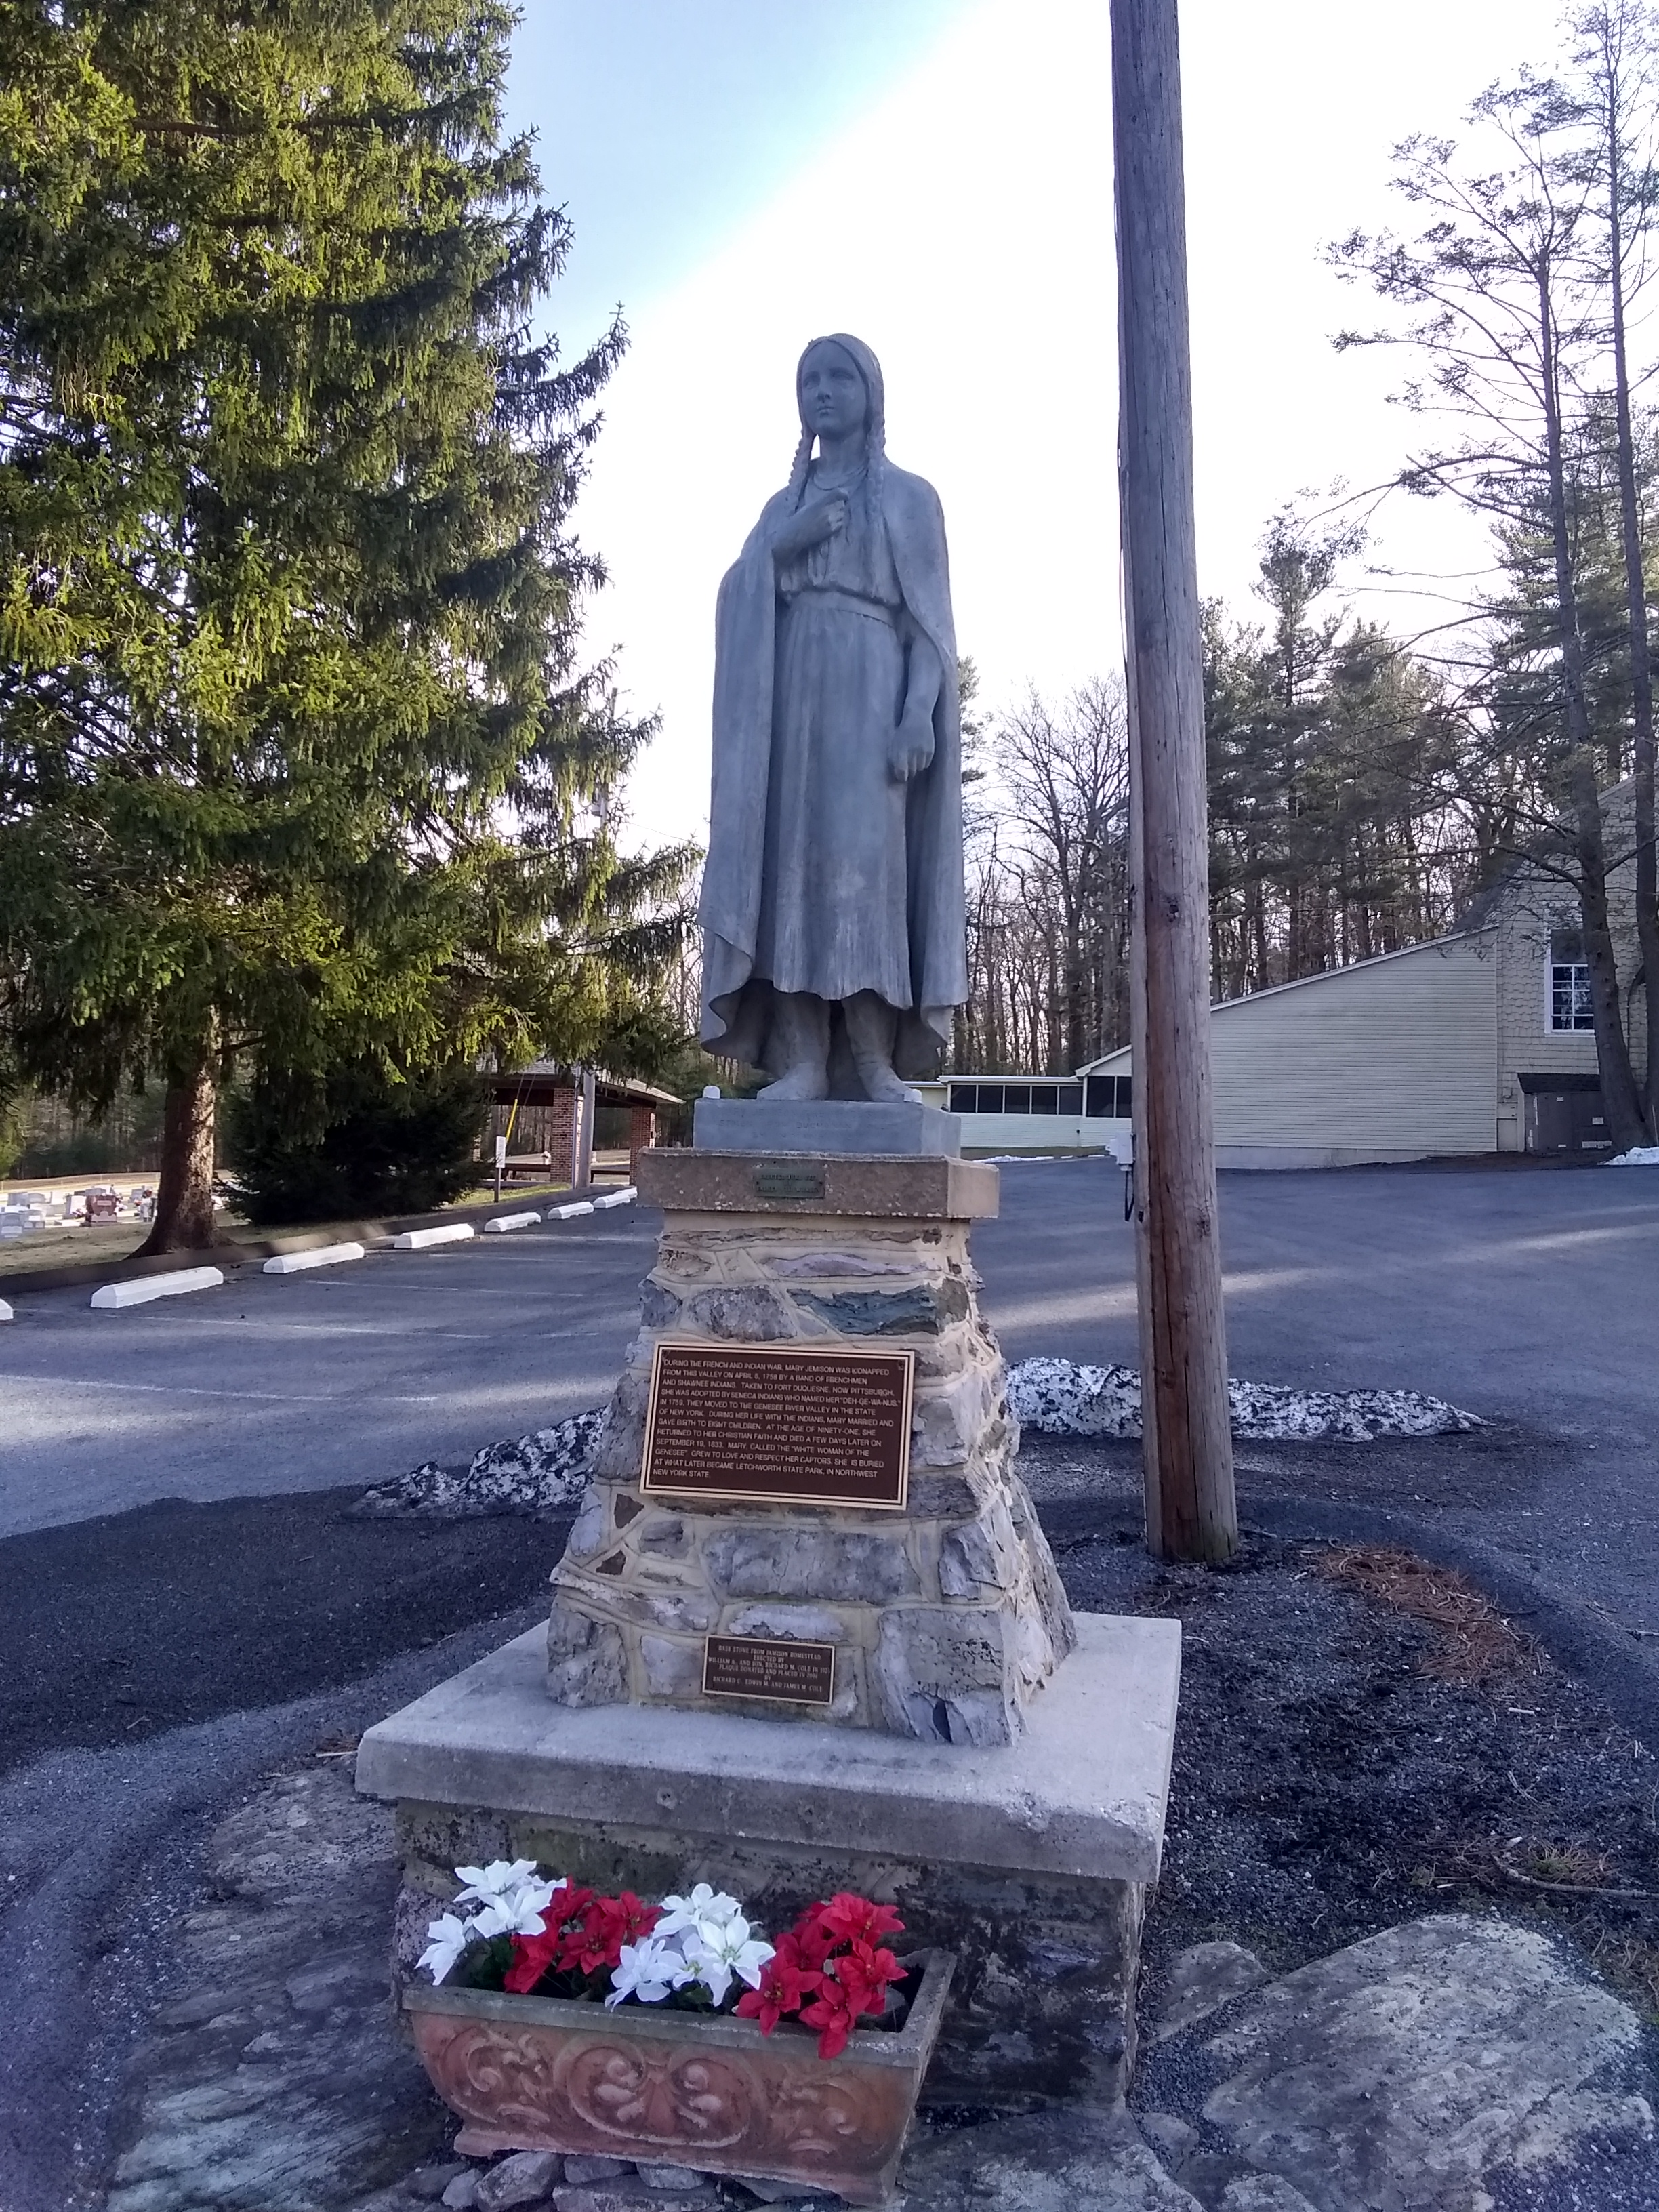 Commemorative Statue of Mary Jemison